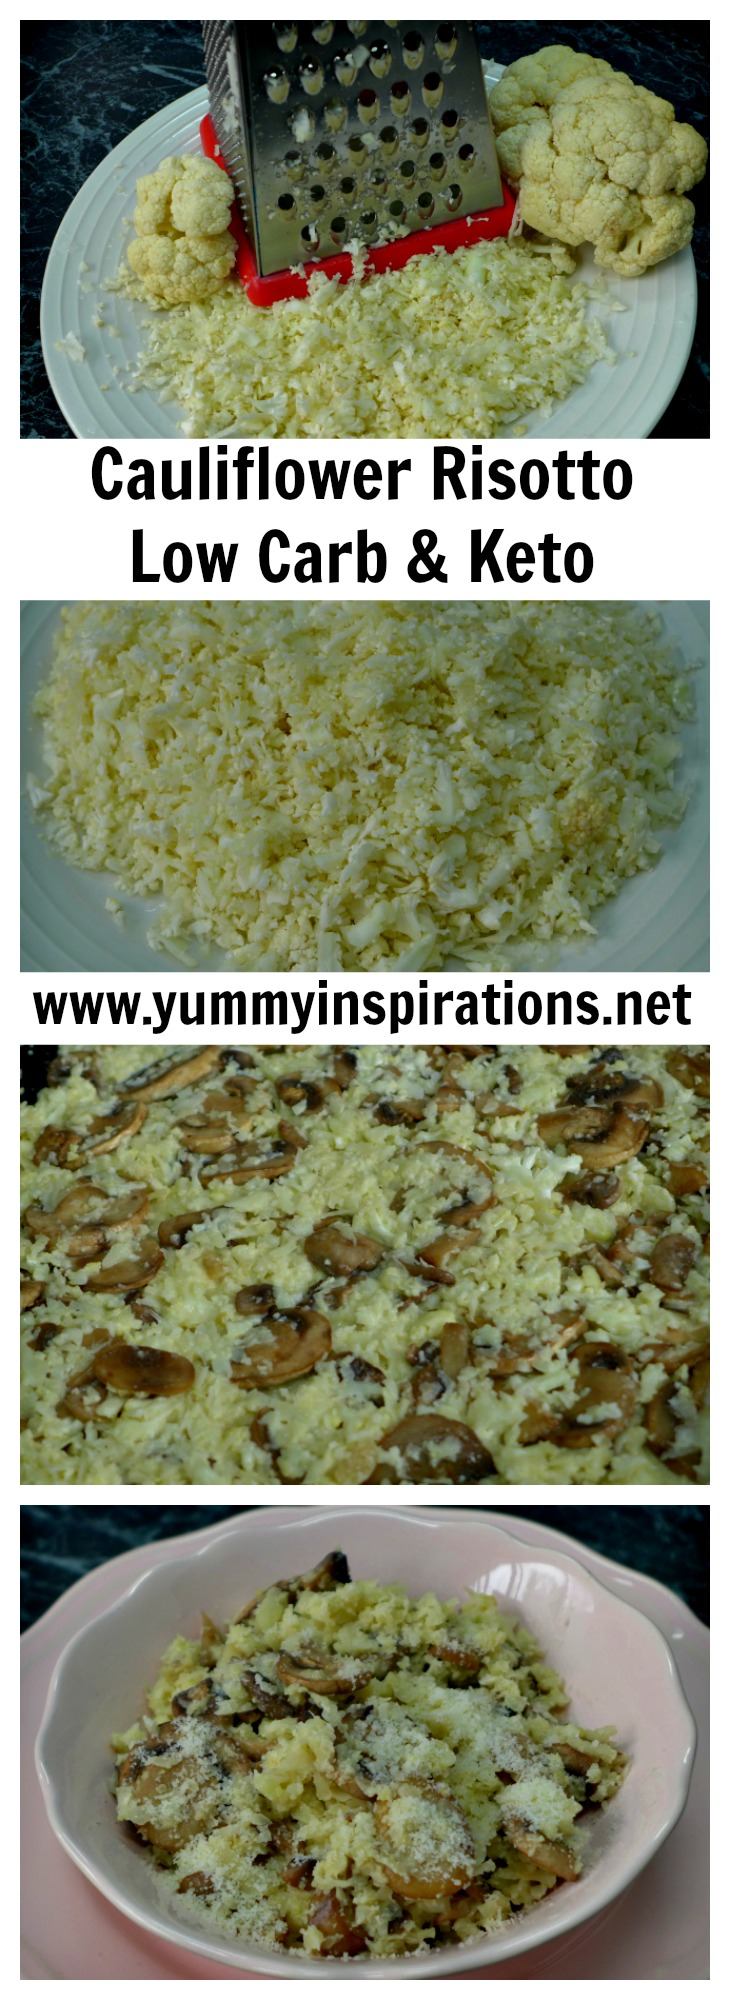 Creamy Mushroom and Cauliflower Risotto Recipe + Low Carb Keto Diet Full Day of Eating